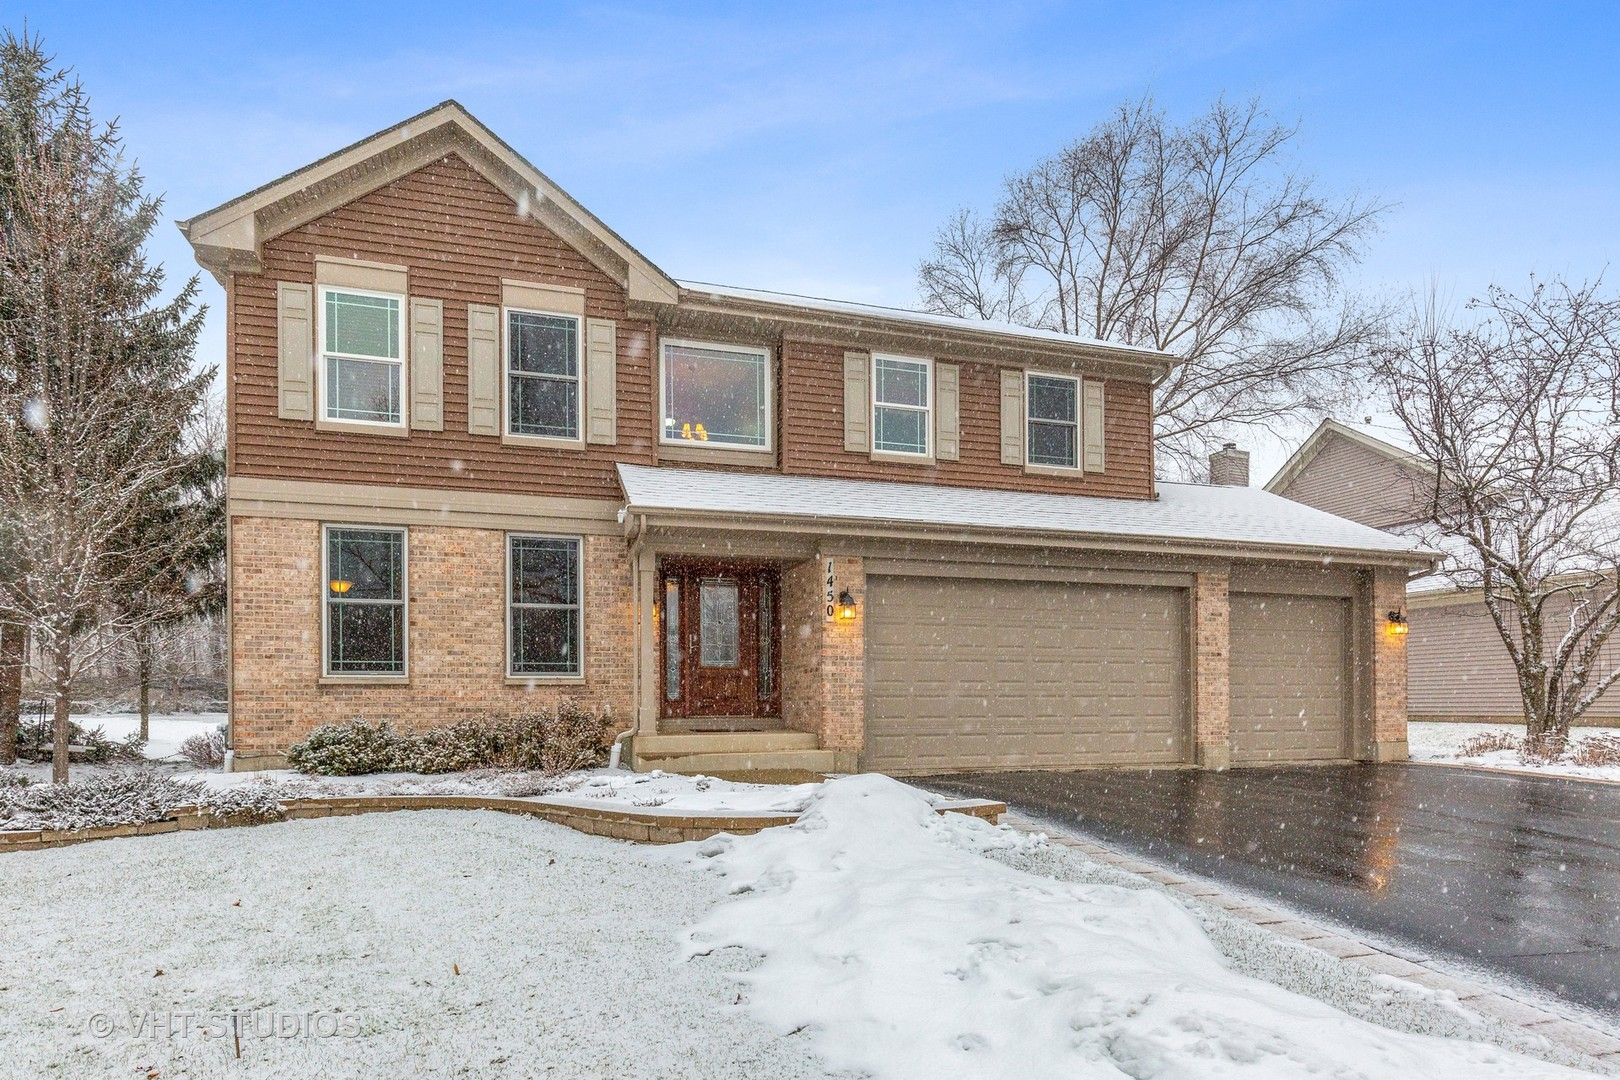 Photo for 1450 Notting Hill Road, Algonquin, IL 60102 (MLS # 10637228)